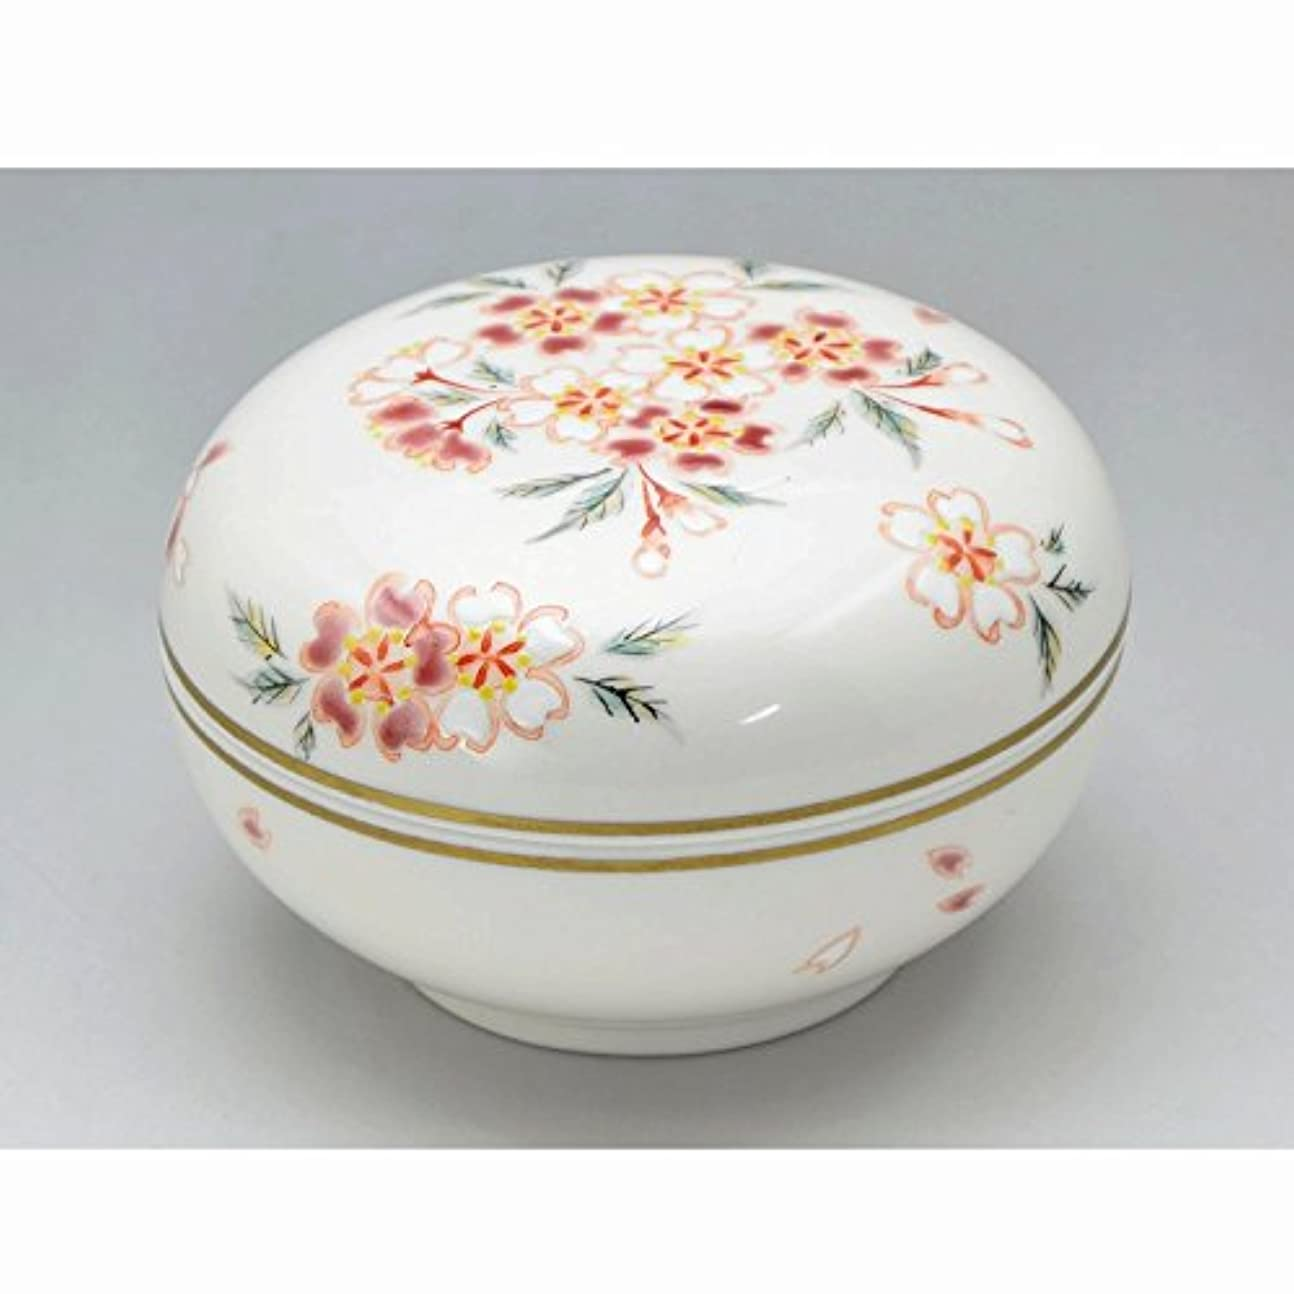 運動する振り返る信仰京焼?清水焼 磁器 香合 花桜 紙箱入 Kiyomizu-kyo yaki ware. Japanese porcelain kogo incense burner hanazakura with paper box.